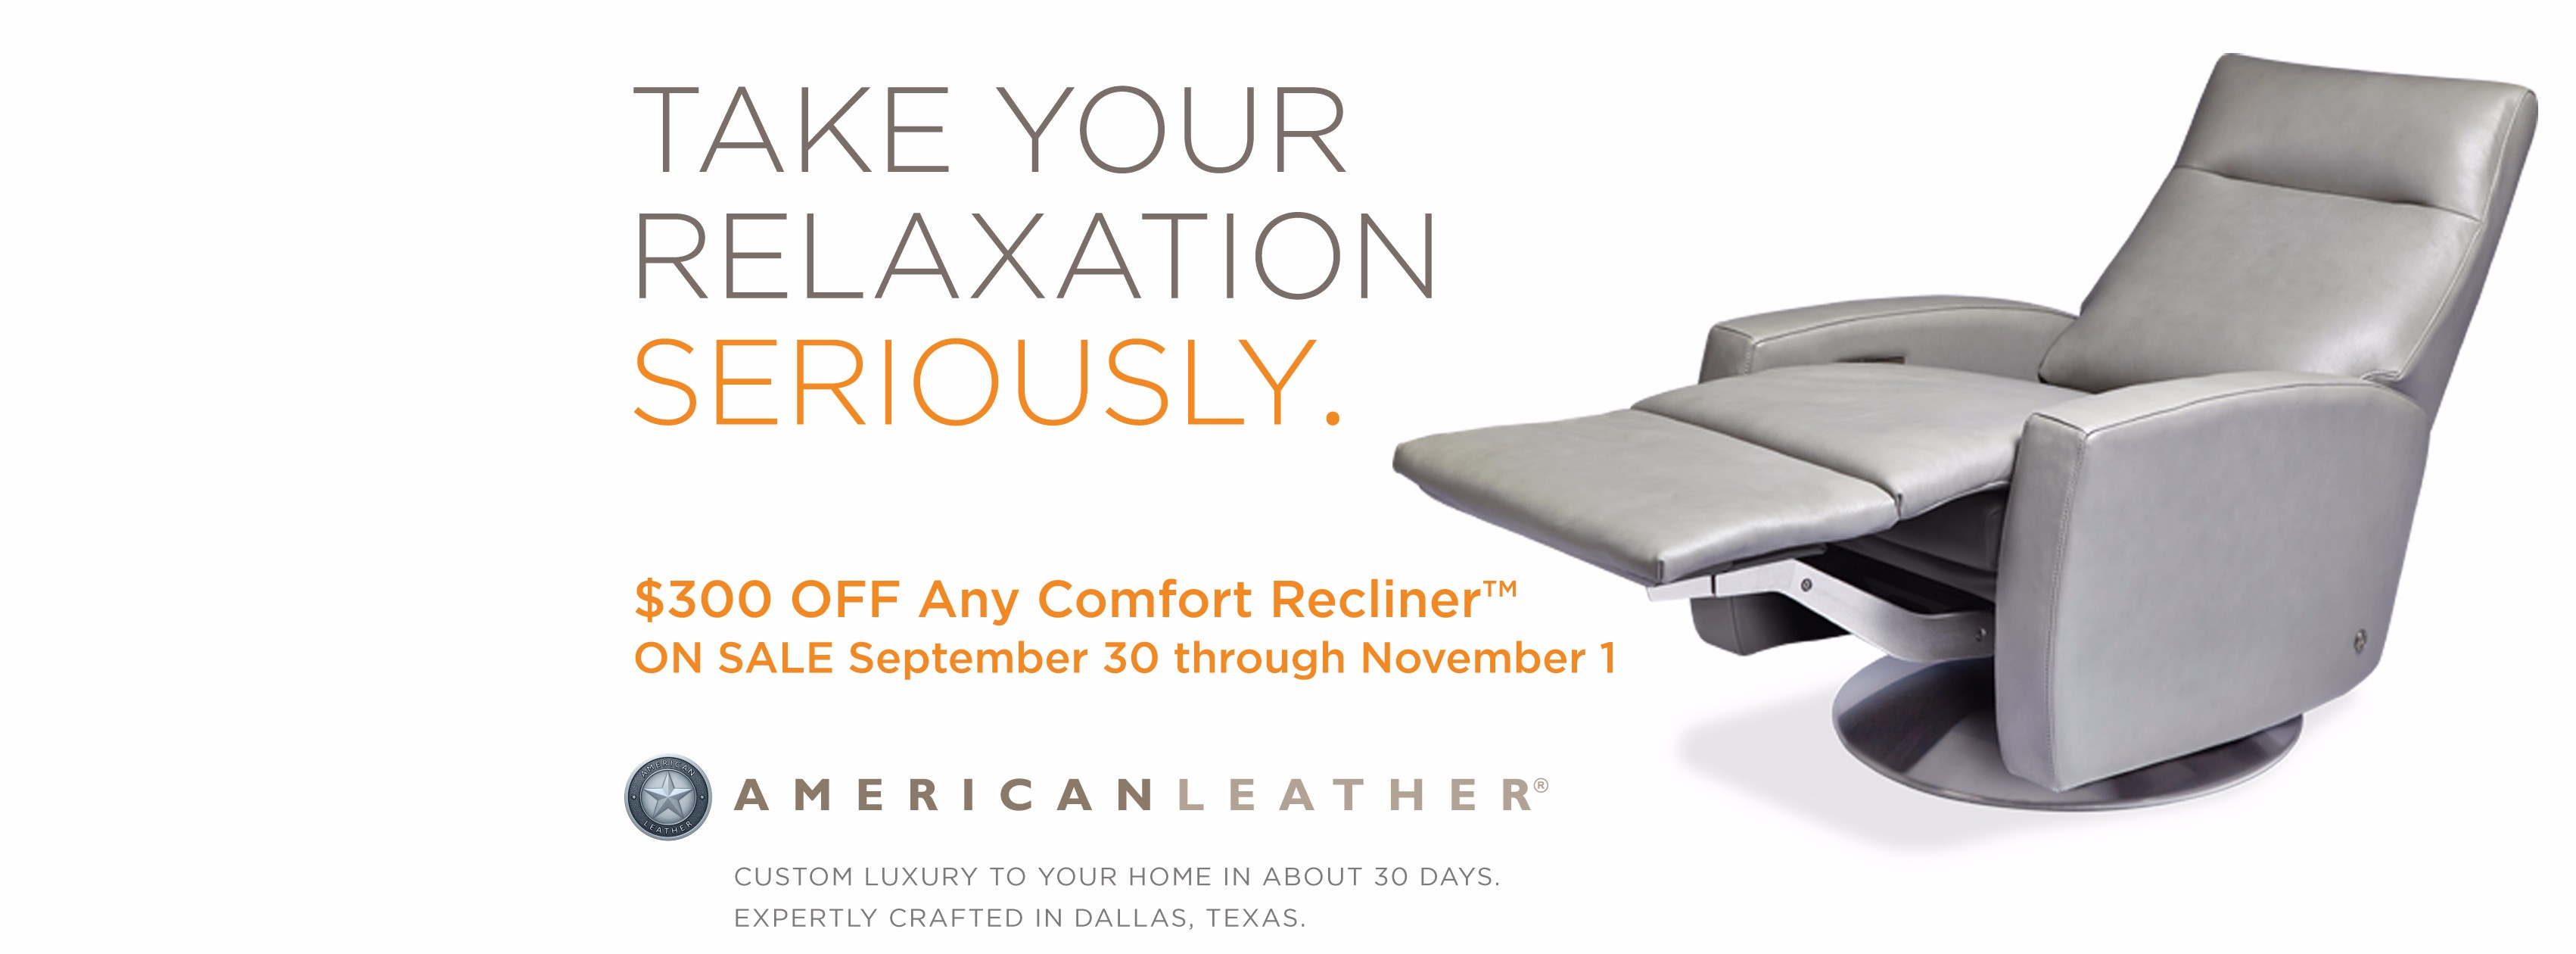 American Leather Recliner Sale   Save $300 On Amazing Relaxation    BeyondBlue Interiors   Raleigh, Durham, Chapel Hill NC Home Furnishings  Interior Design